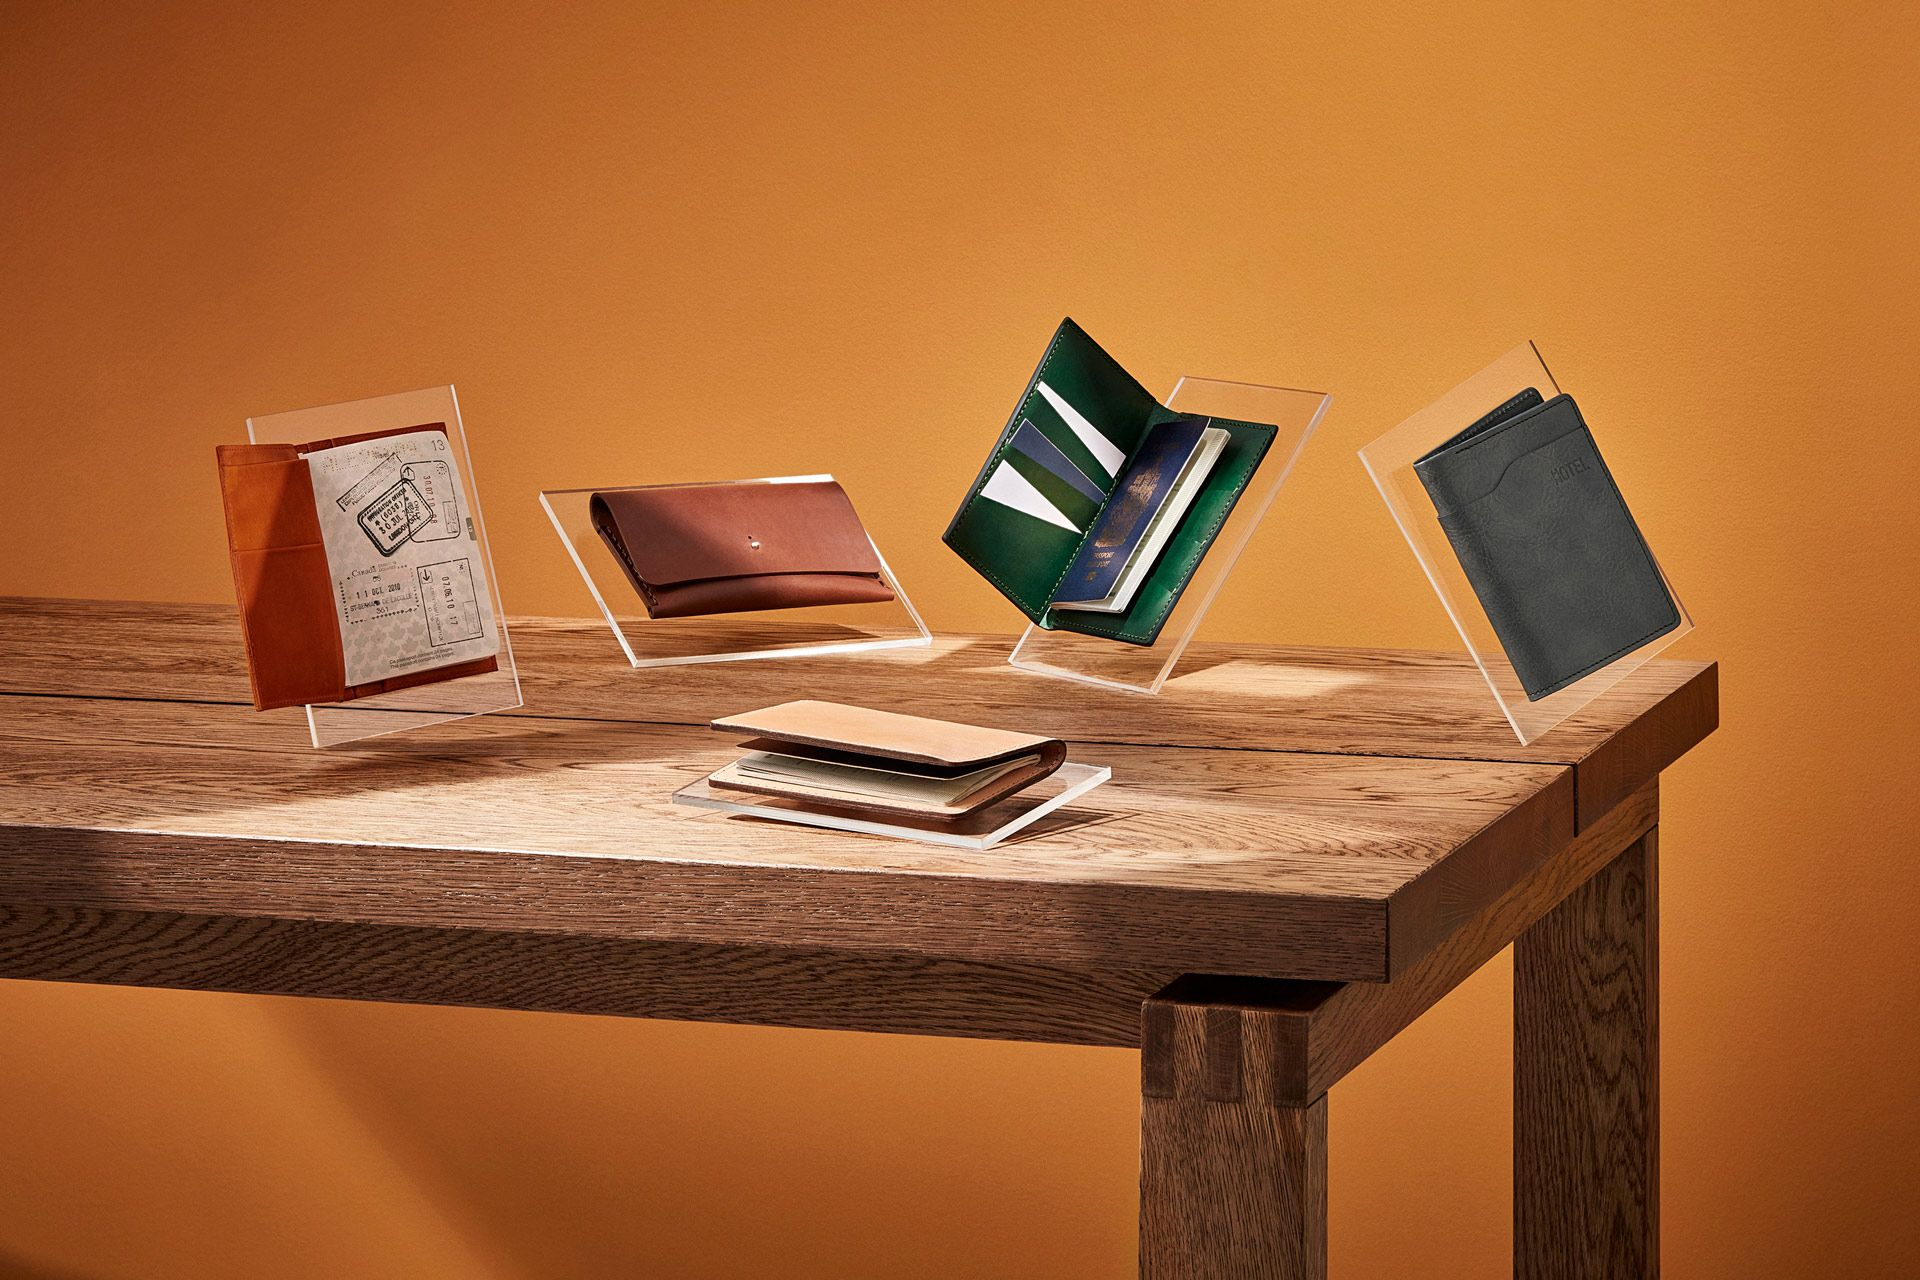 wood tables presenting different types of wallets floating in the air by Mathieu Levesque for enRoute